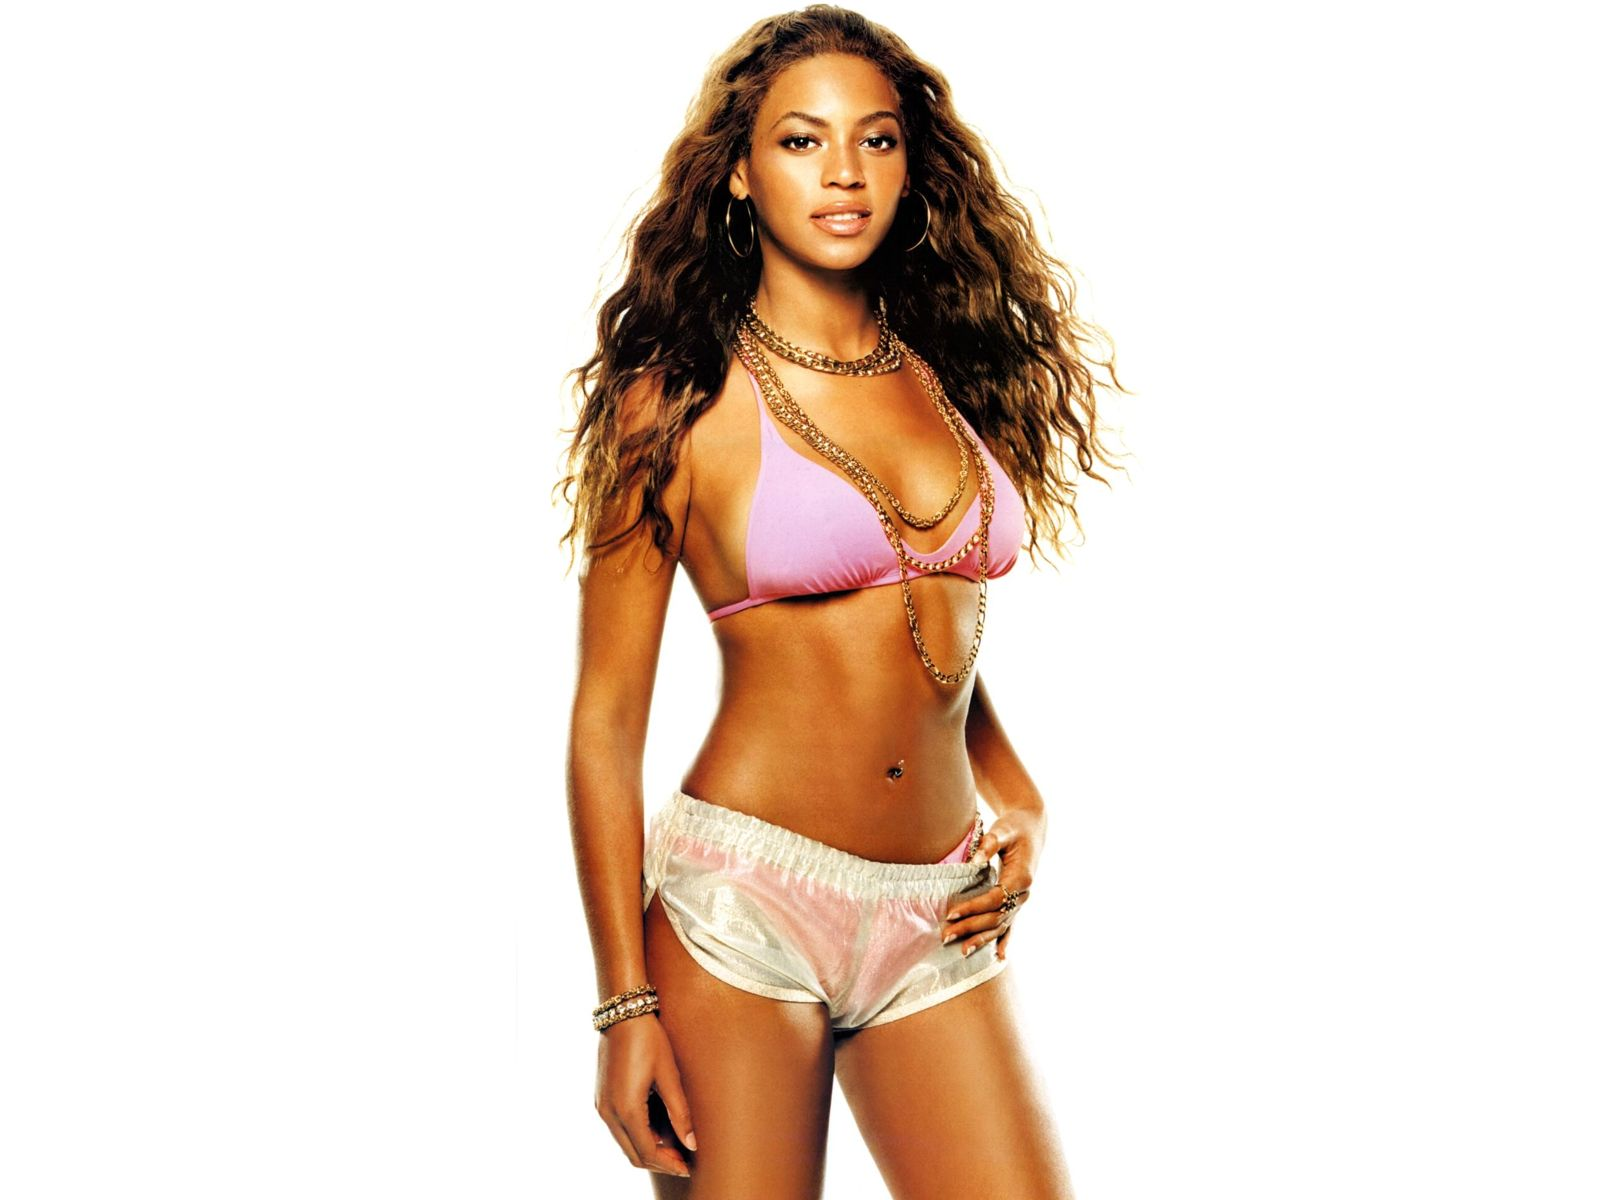 Hot Beyonce Knowles nudes (69 images), Hot